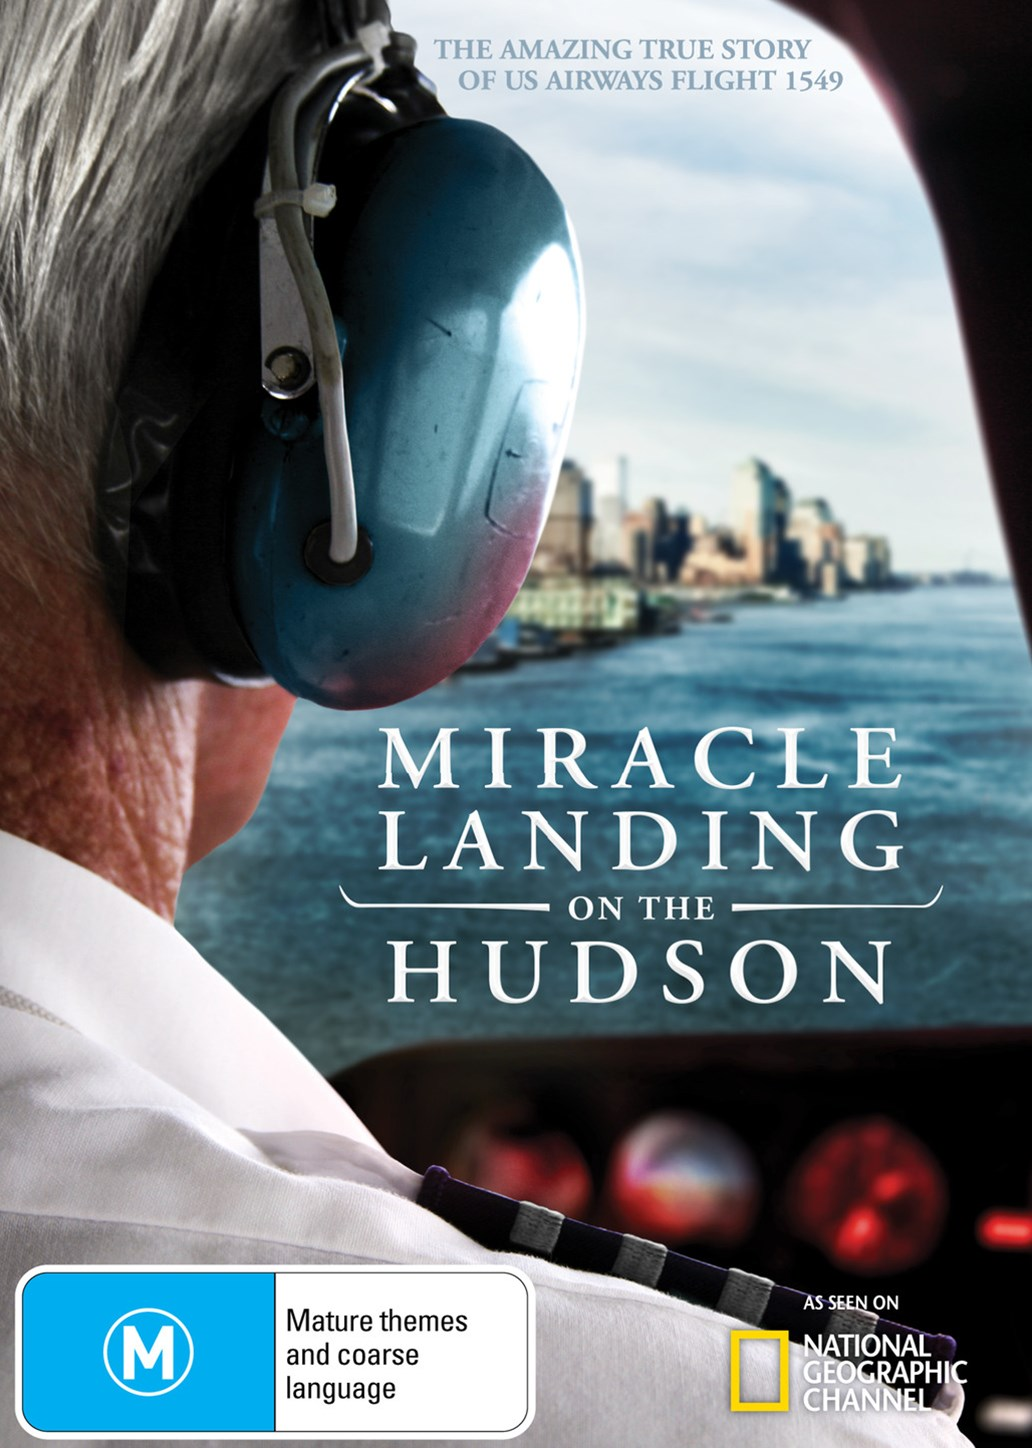 National Geographic: Miracle Landing on the Hudson